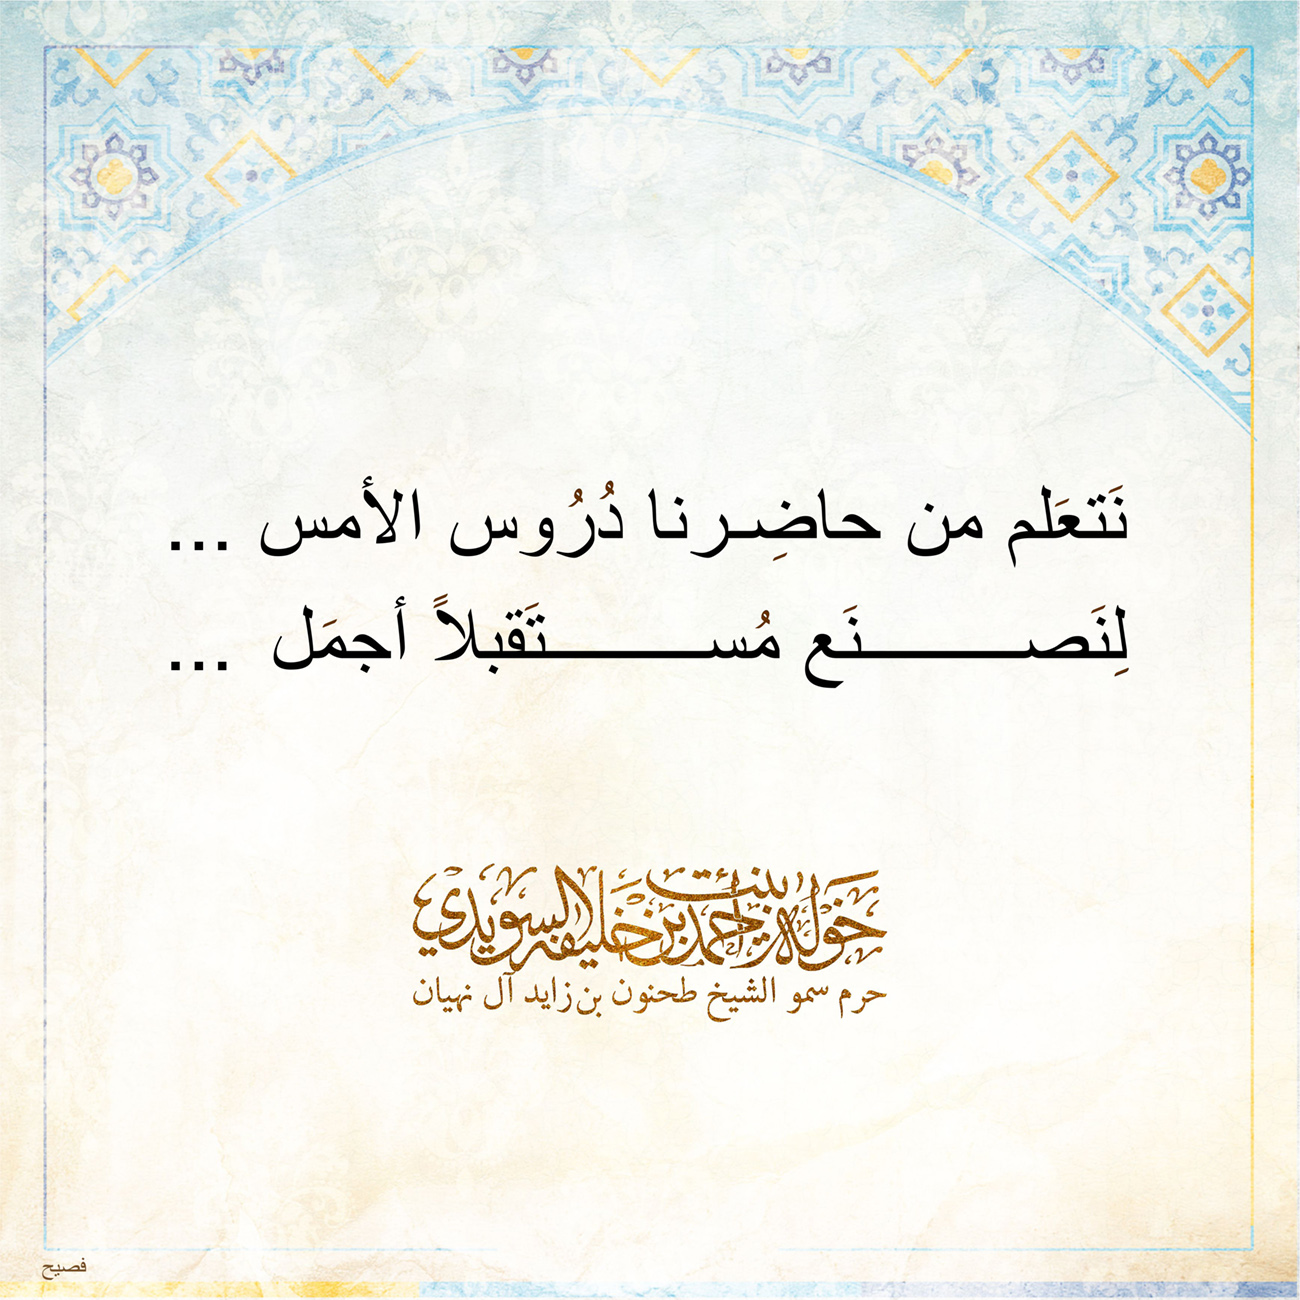 نَتعَلم من حاضِرنا دُرُوس الأمس ... 